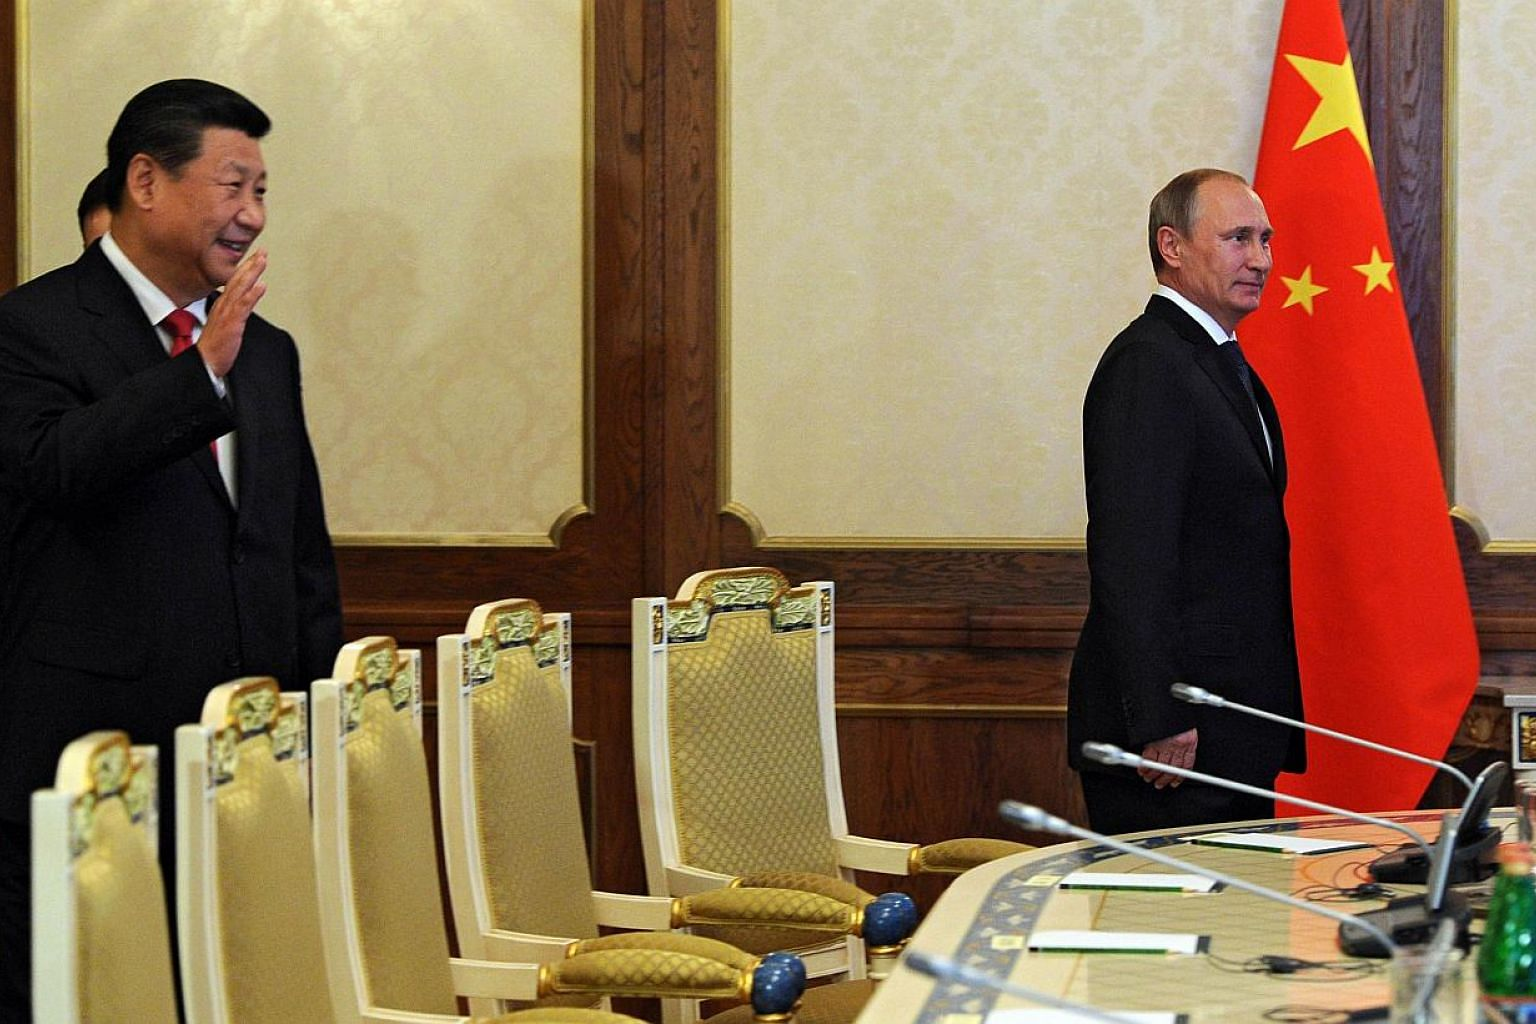 Chinese President Xi Jinping and his Russian counterpart Vladimir Putin at the recent Shanghai Cooperation Organisation summit in Tajikistan. Beijing is keen to consolidate its influence in Central Asia and strengthen its strategic partnership with n